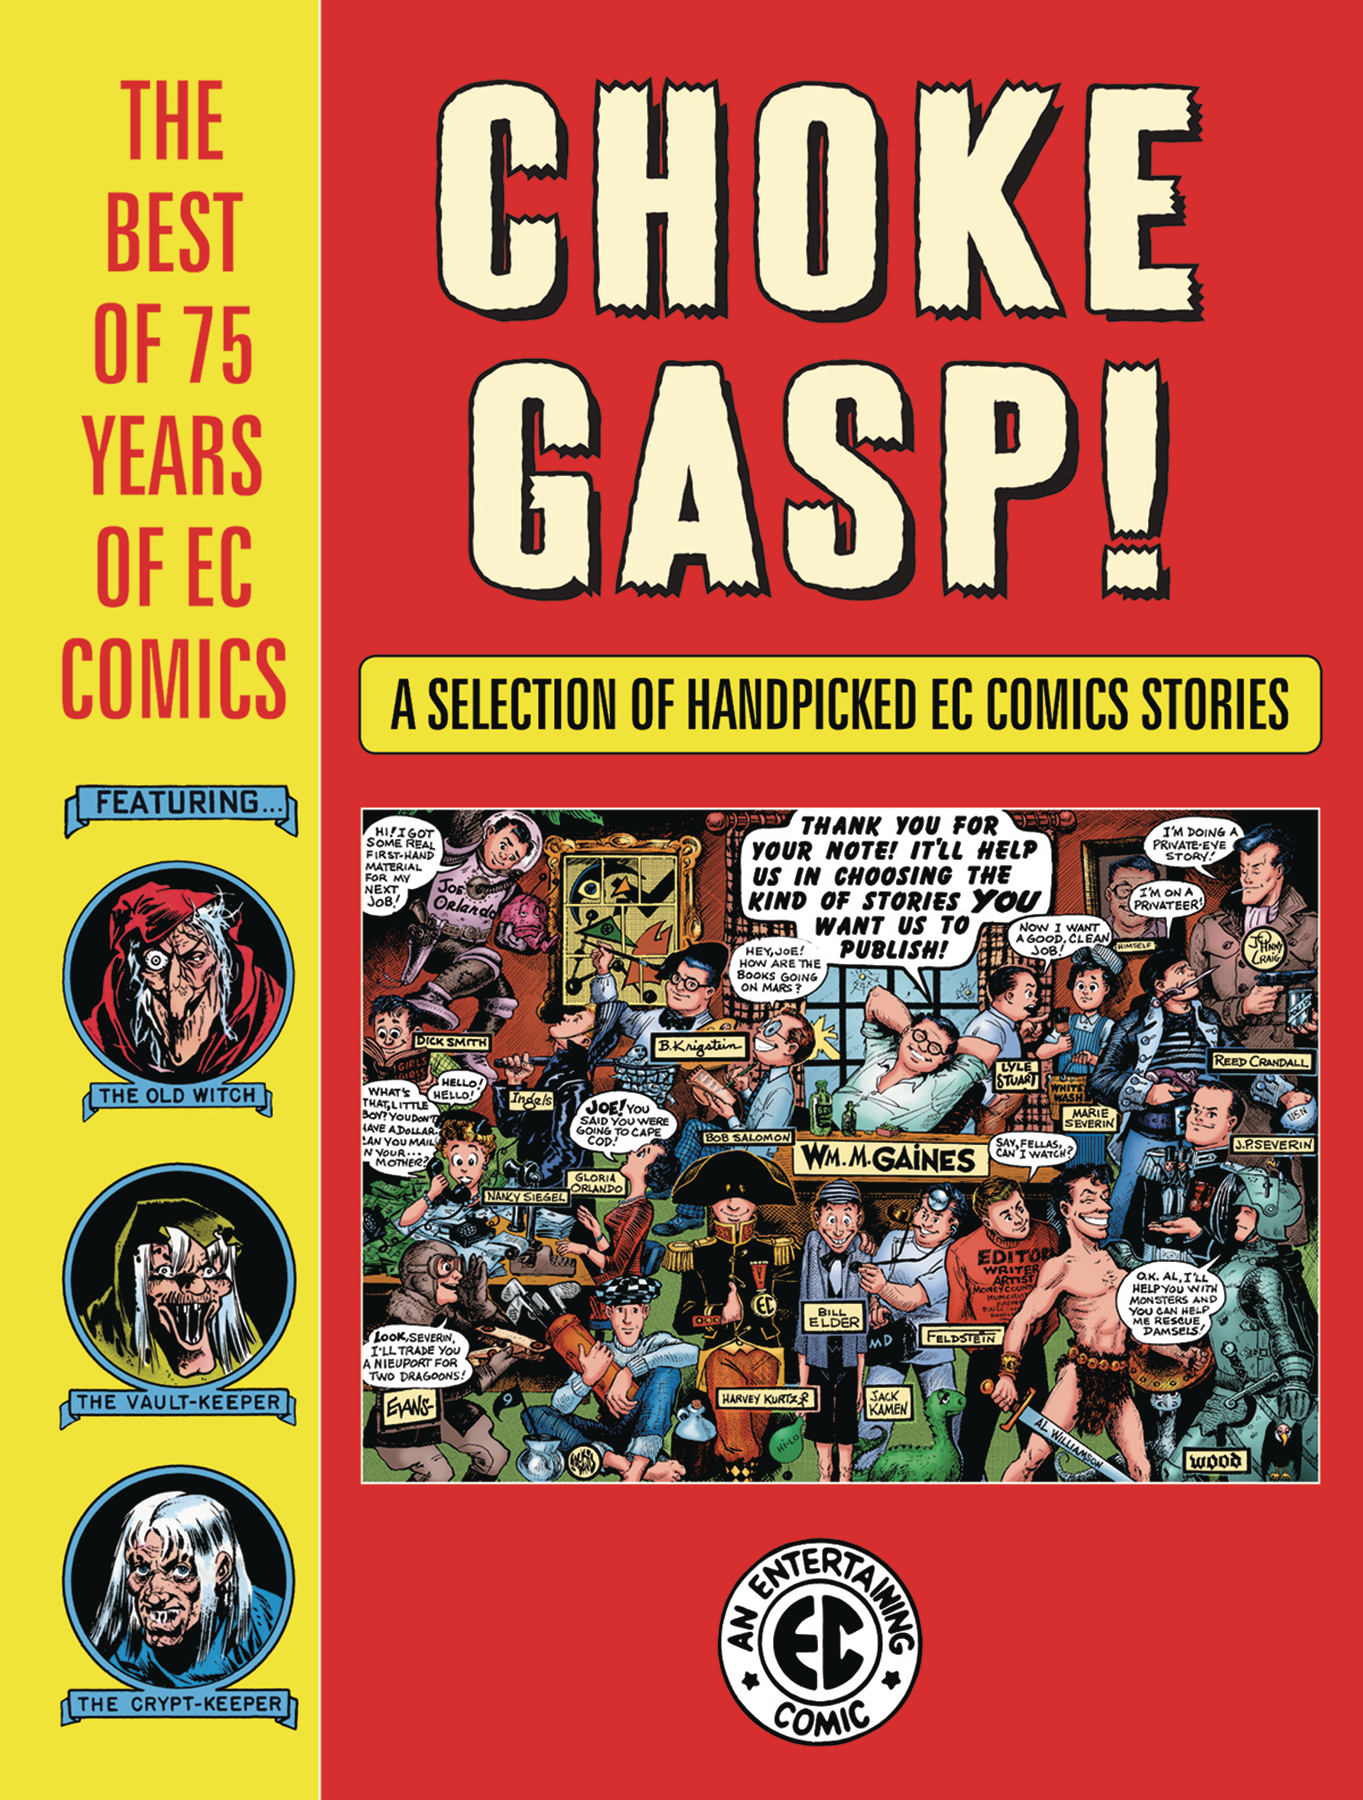 CHOKE GASP THE BEST OF 75 YEARS OF EC COMICS HC